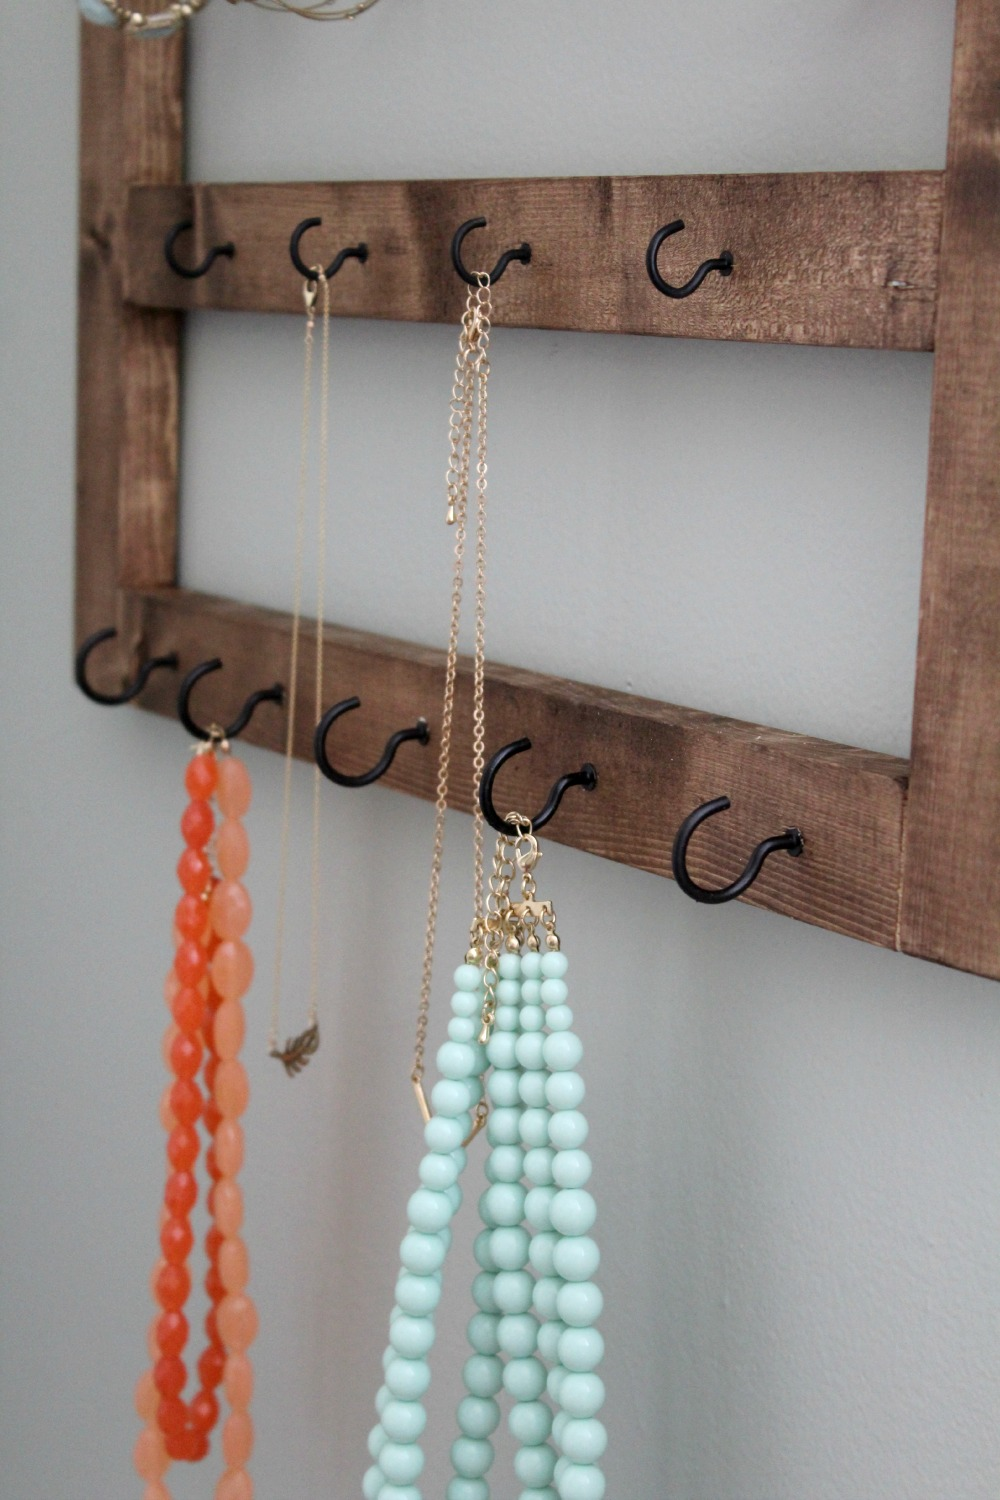 Pottery Barn Jewelry Holder Hack